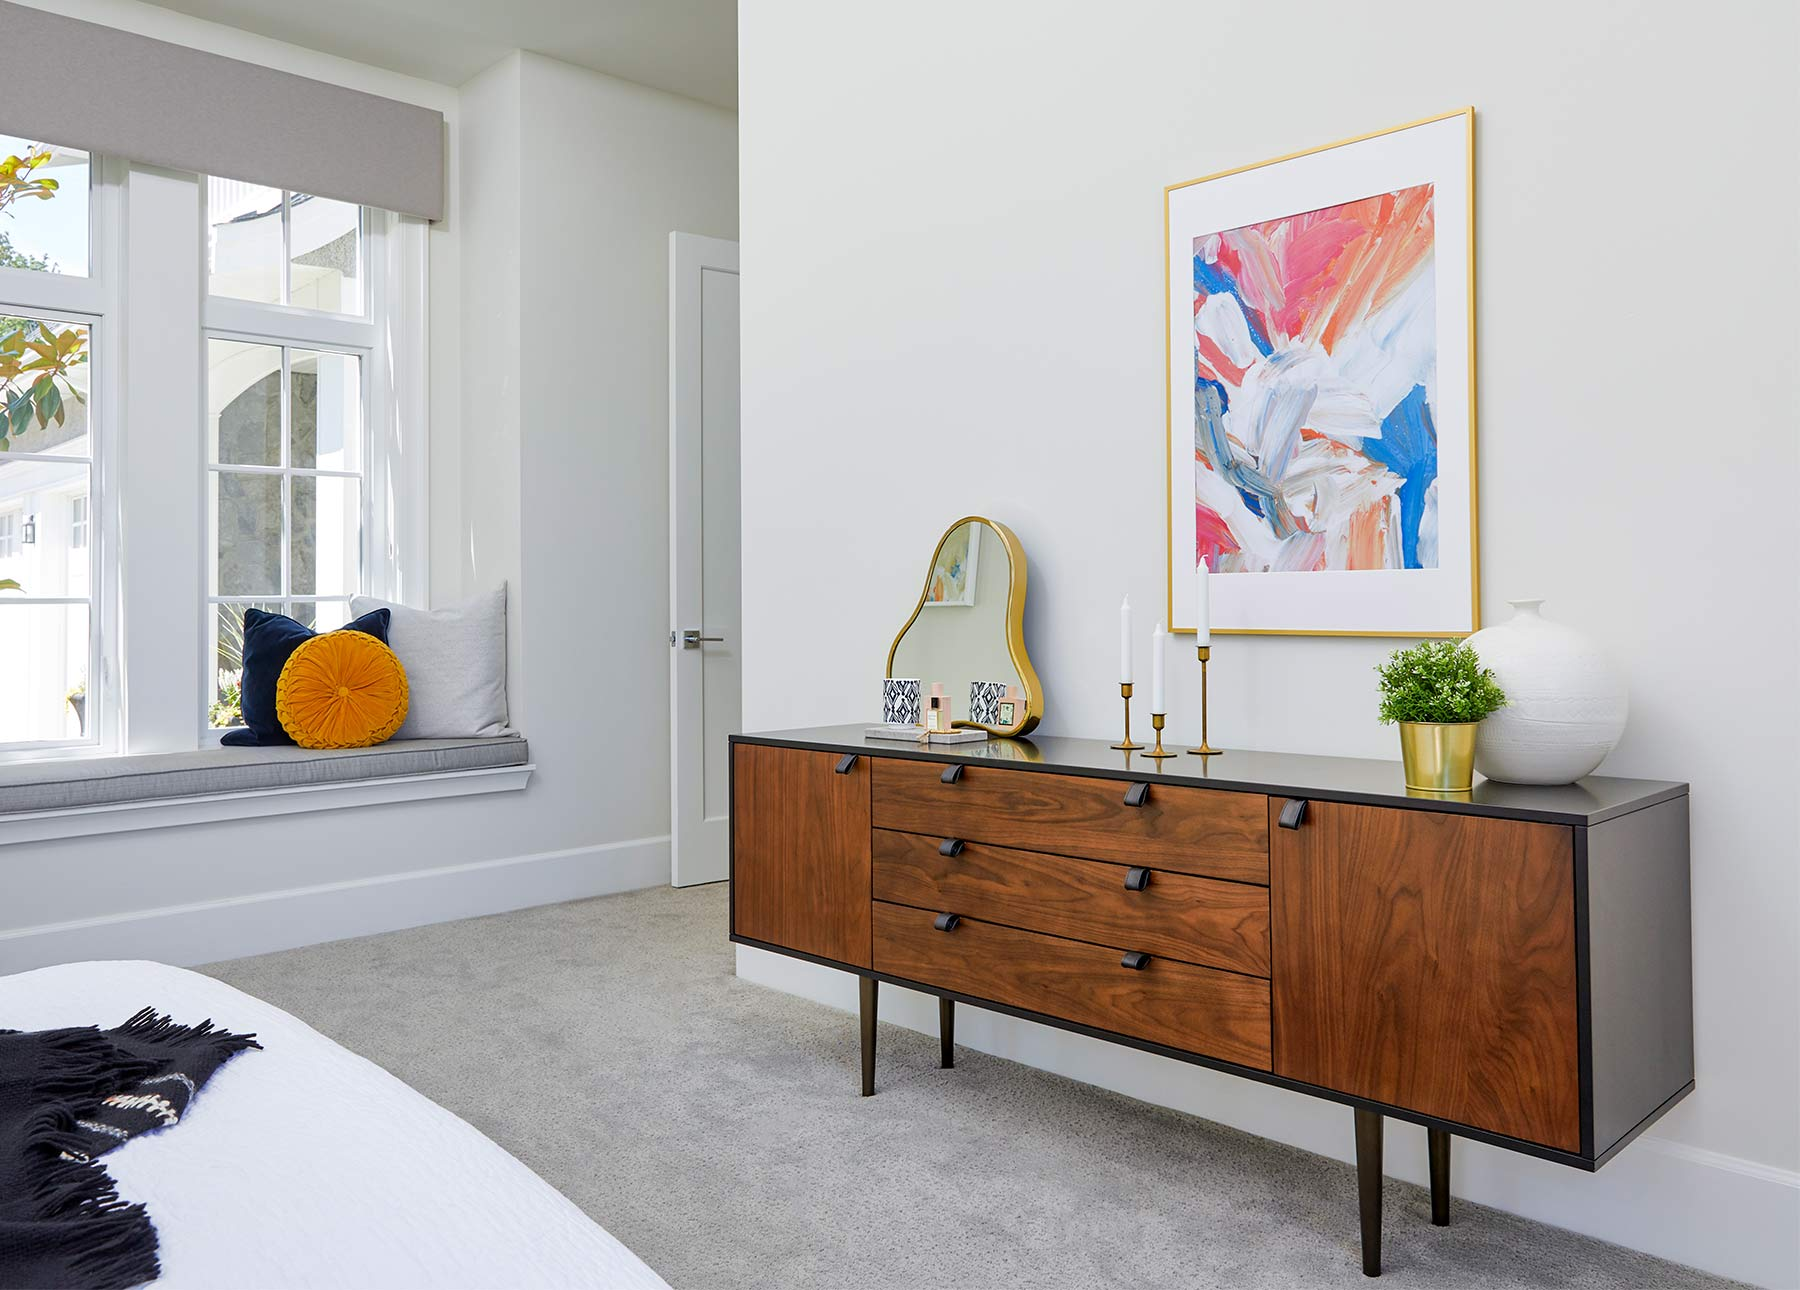 The Envelo Sideboard is shown in a modern bedroom with colorful artwork and an oblong mirror.